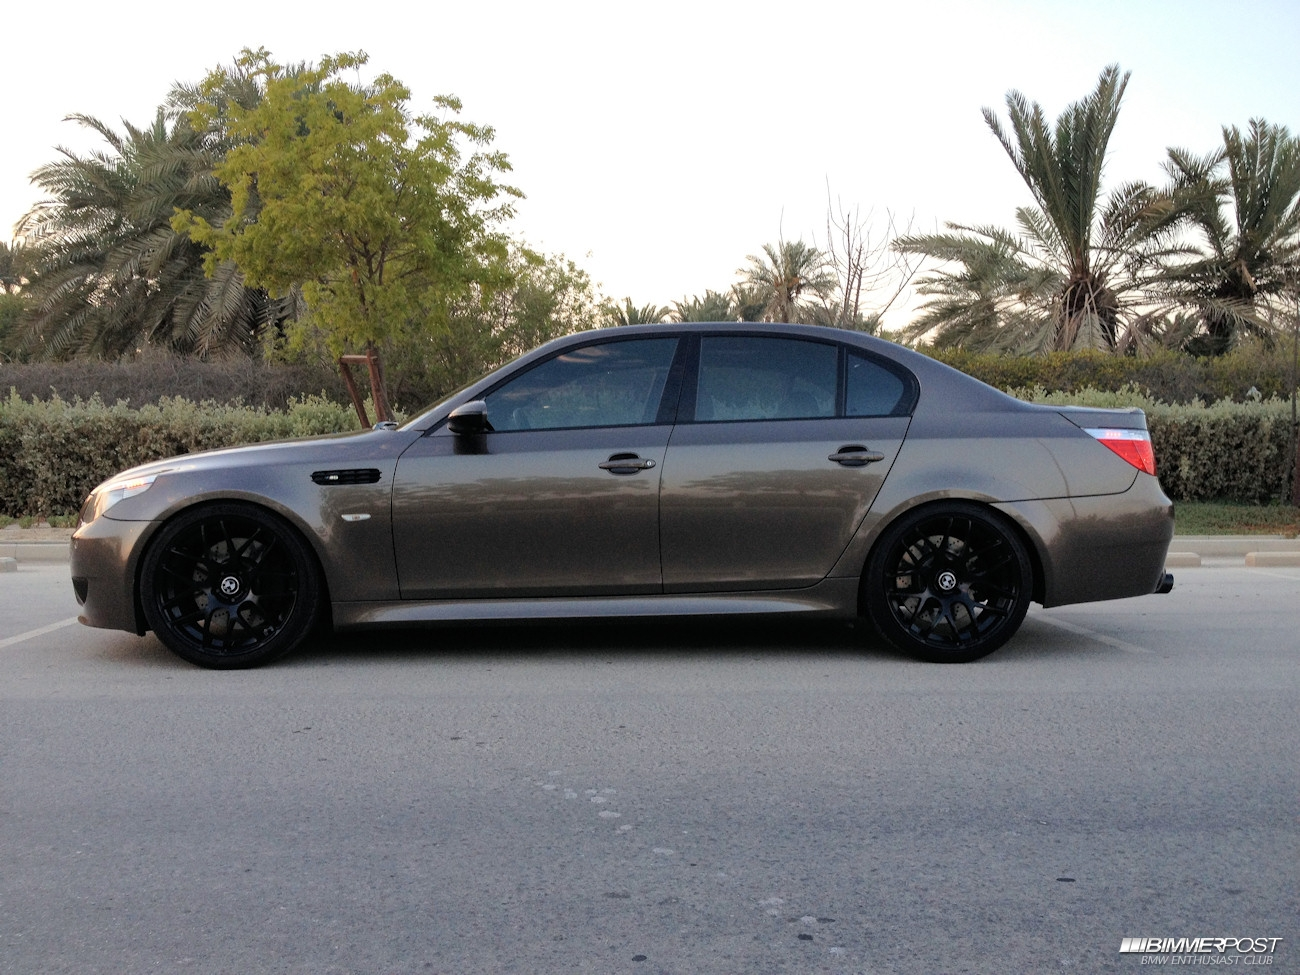 Ahmed S 2006 Bmw M5 Bimmerpost Garage